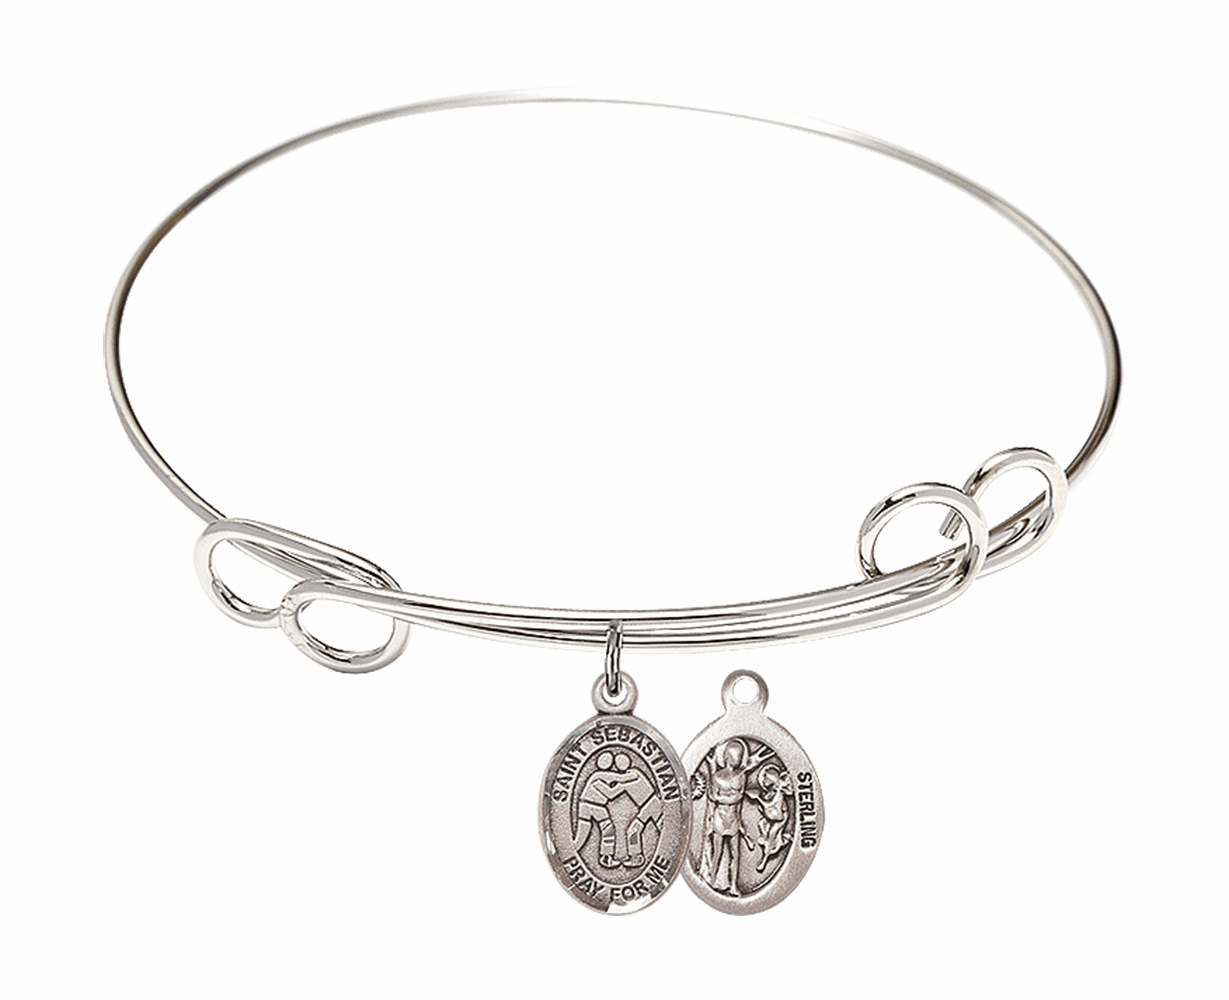 Round Loop St Sebastian Wrestling Bangle Charm Bracelet by Bliss